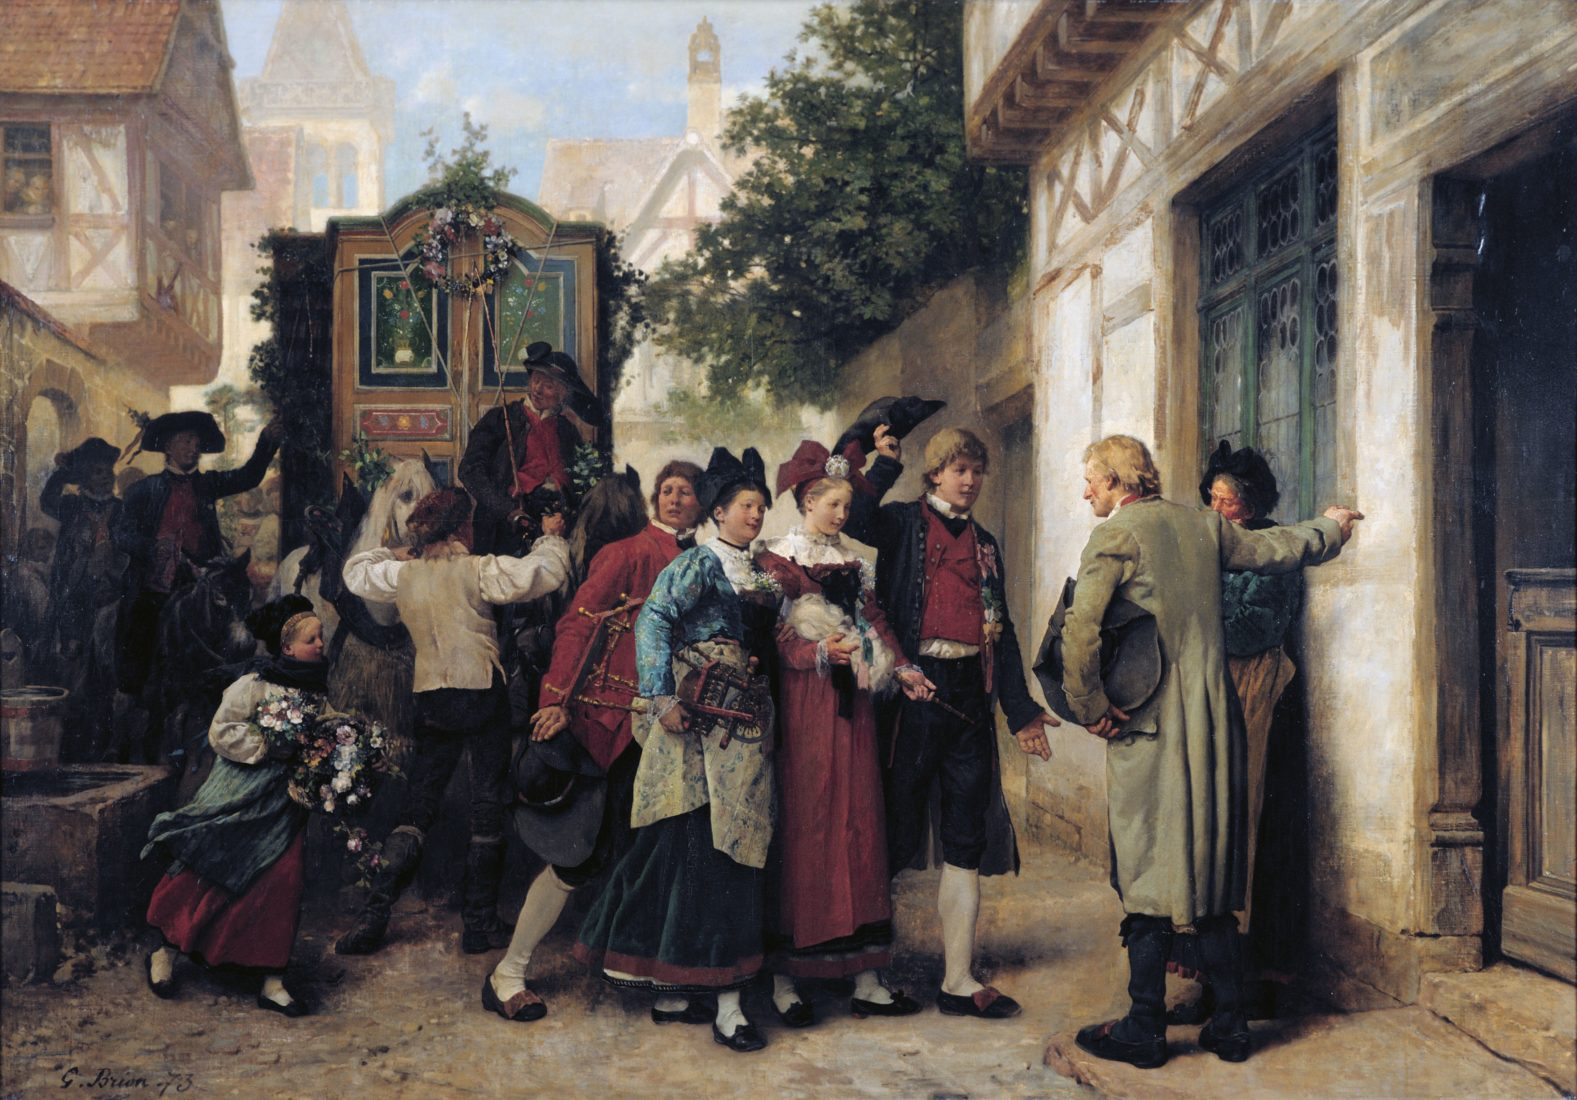 Auguste Brion, Cortège nuptial, 187